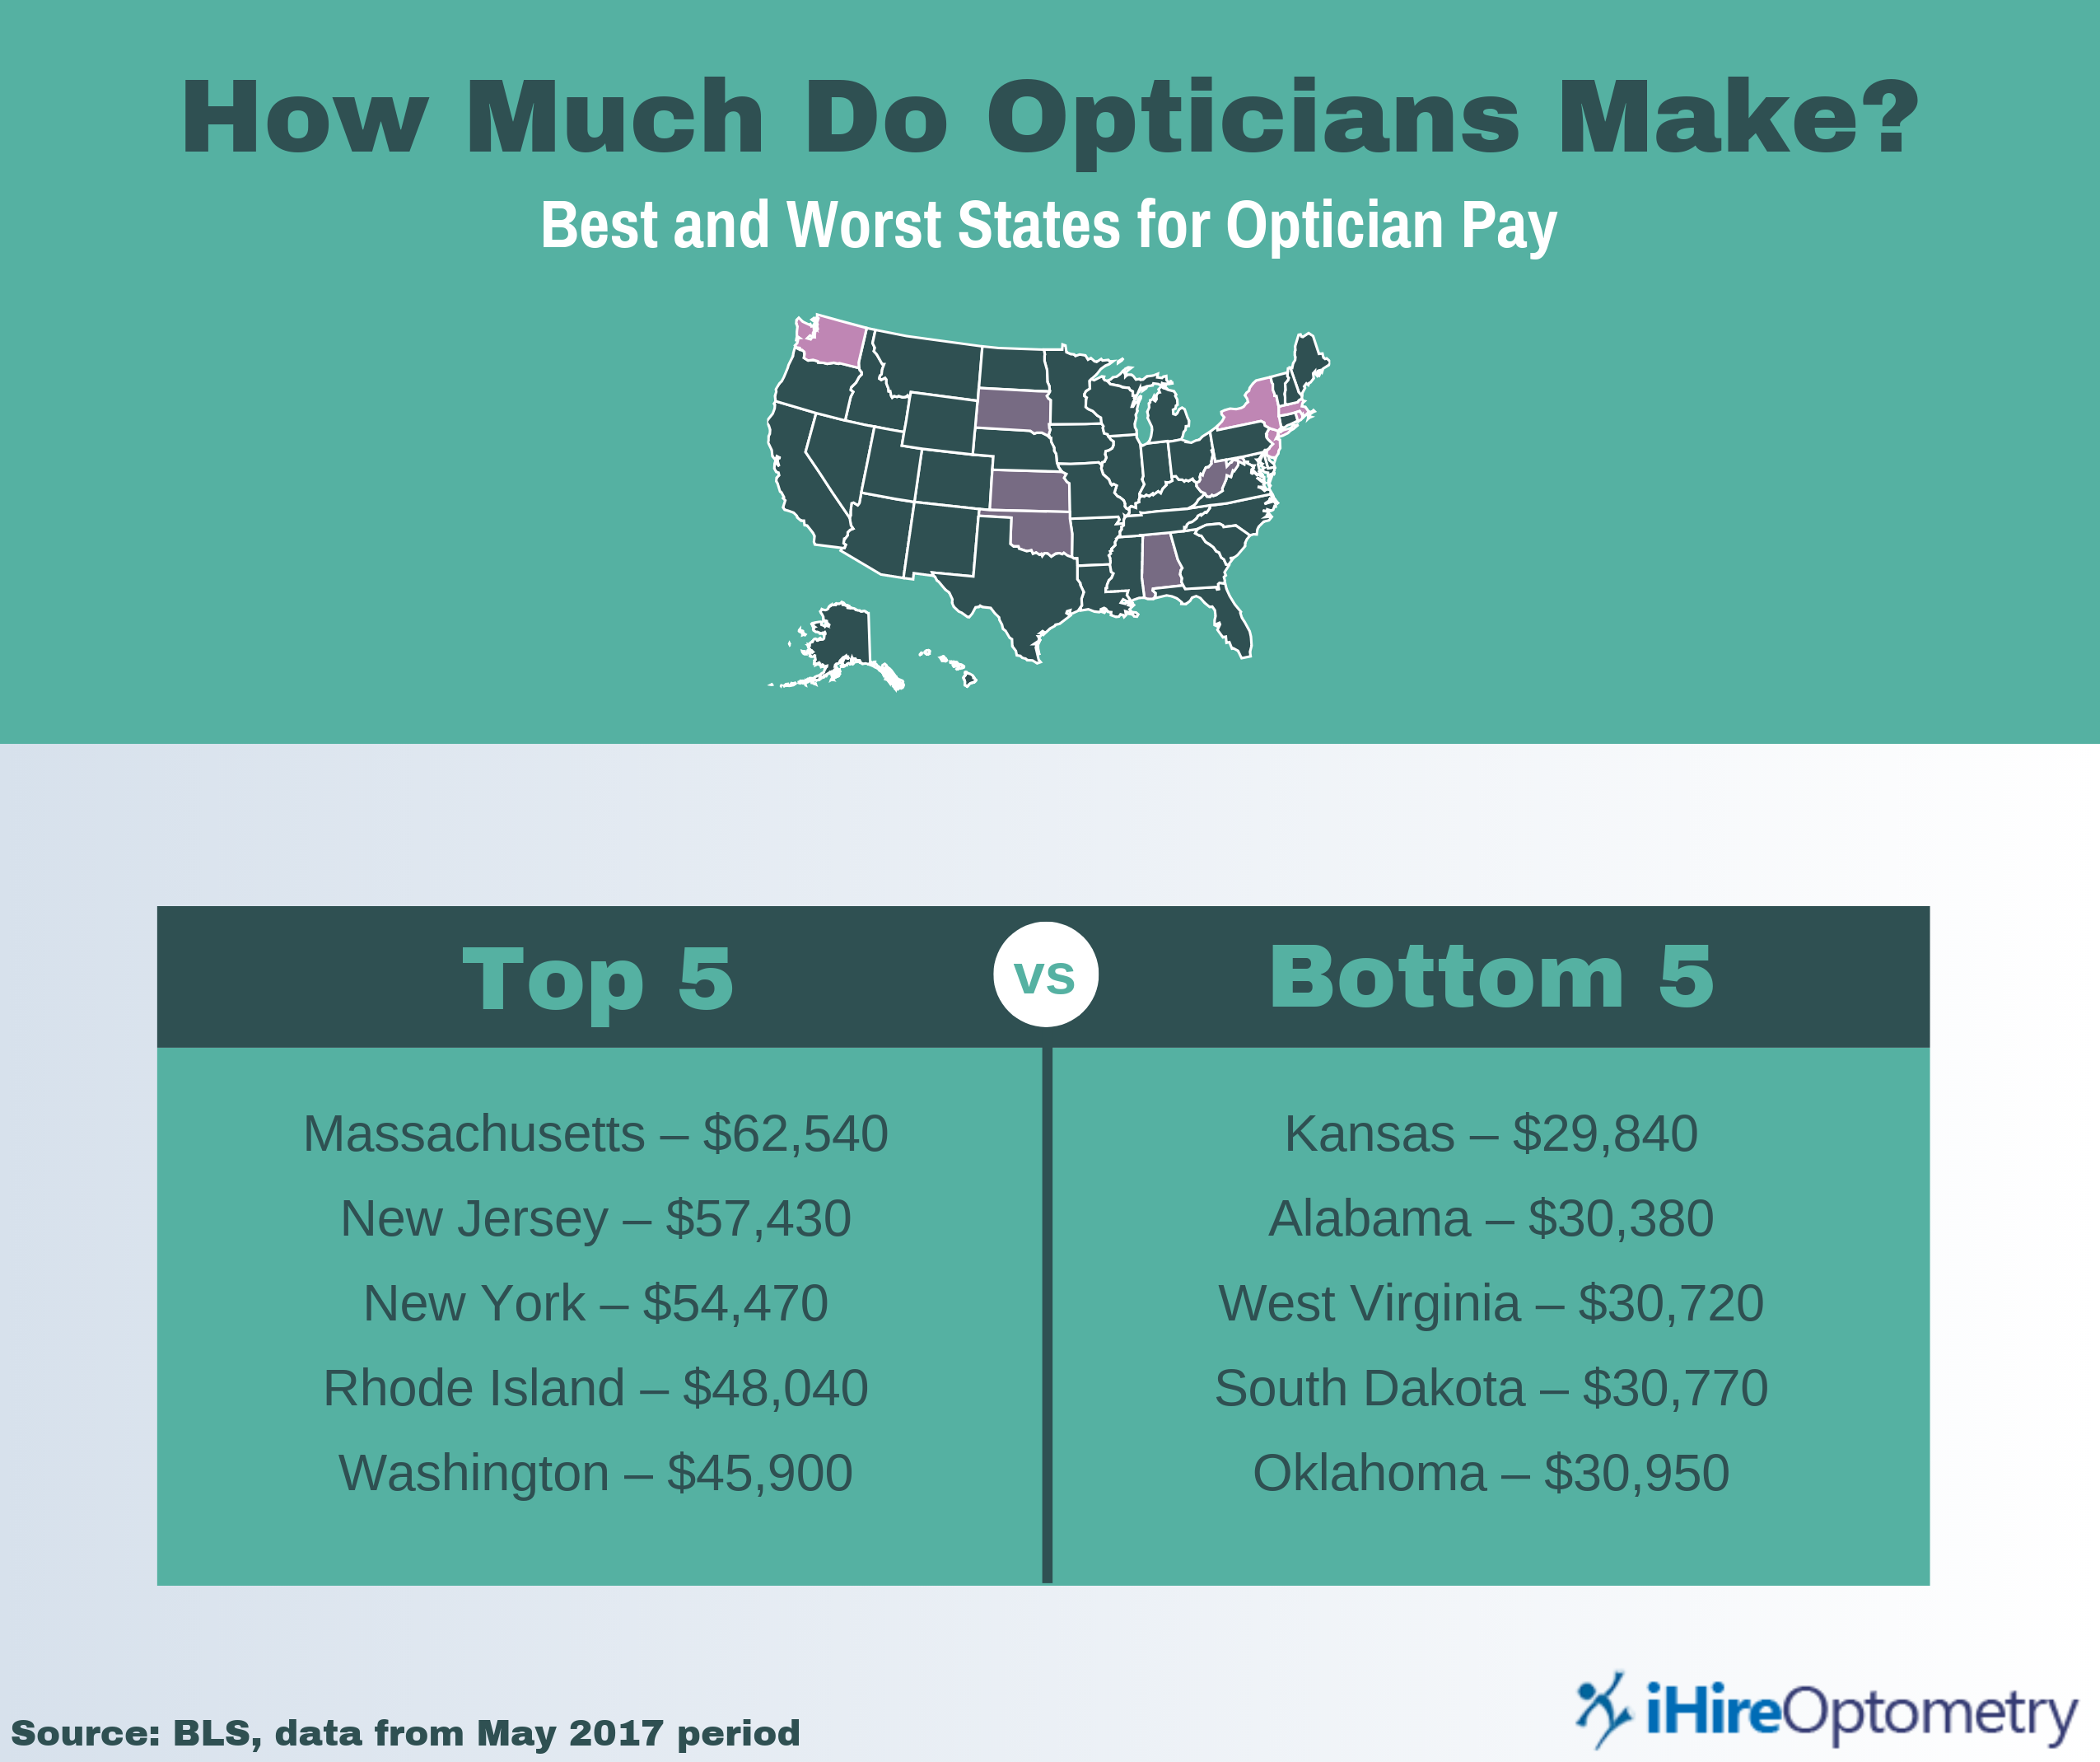 ihireoptometry chart listing the top 5 and bottom 5 states for optician pay